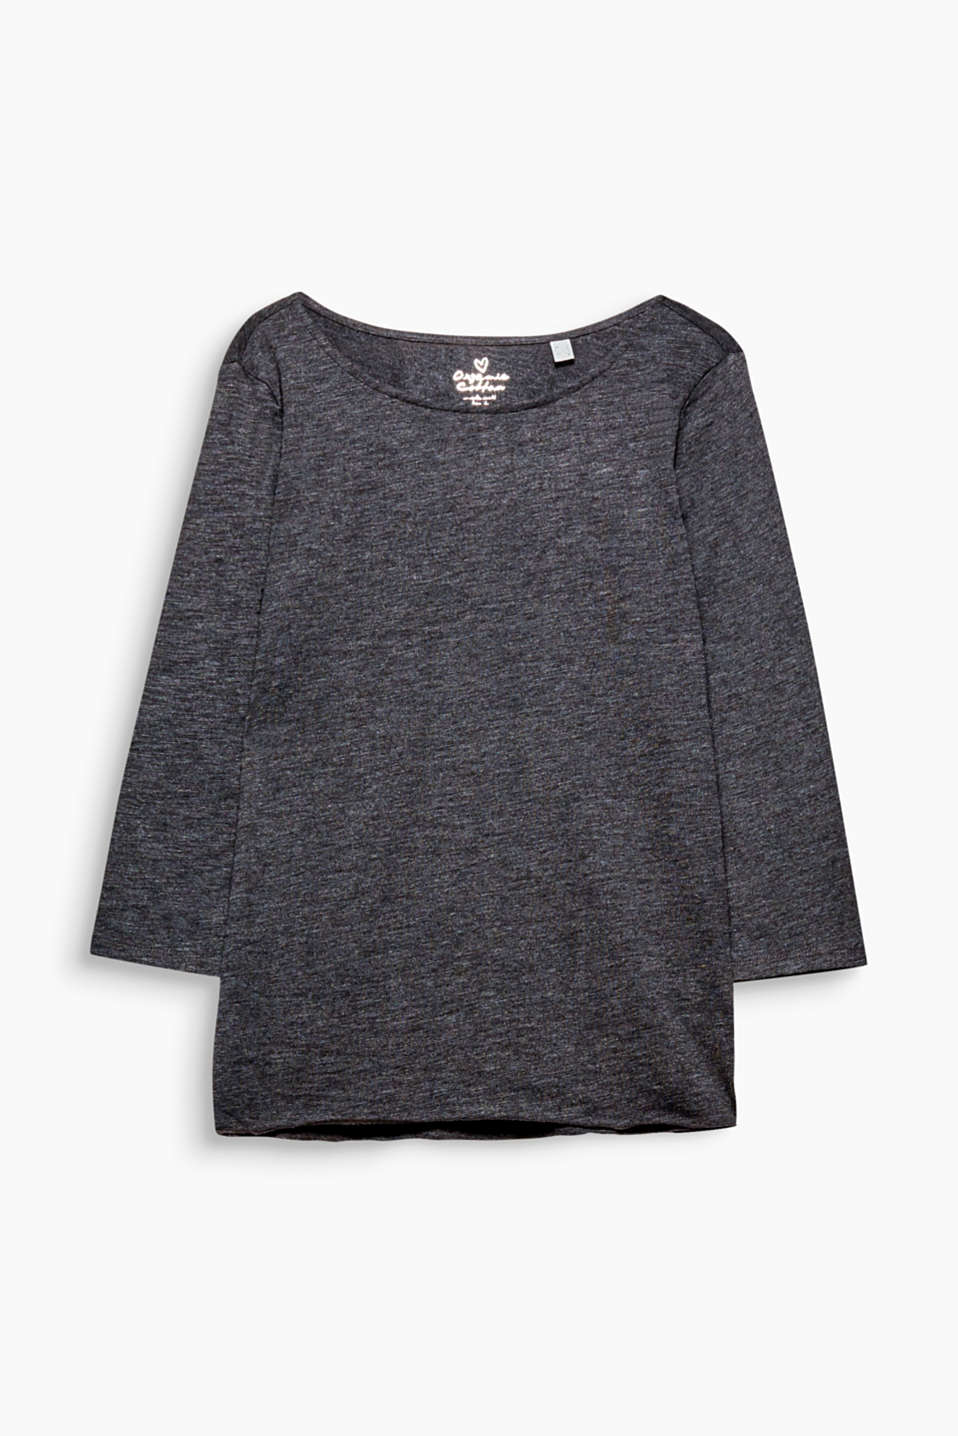 This casual top made of environmentally friendly, premium organic cotton is an indispensable basic!